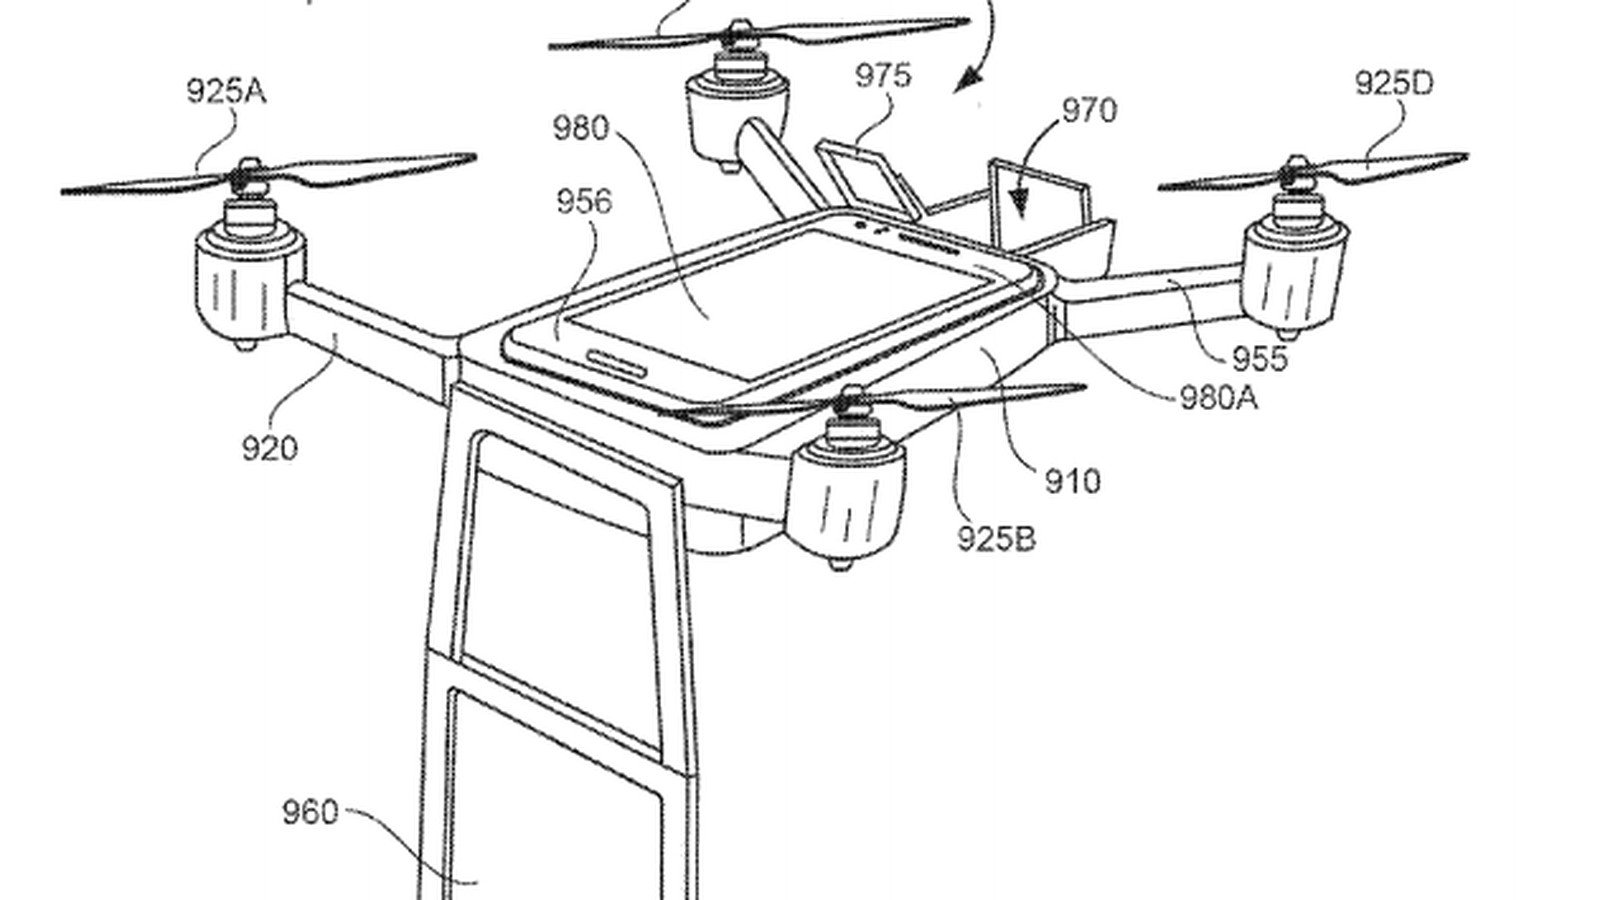 Working From Home Has Patented A Drone For